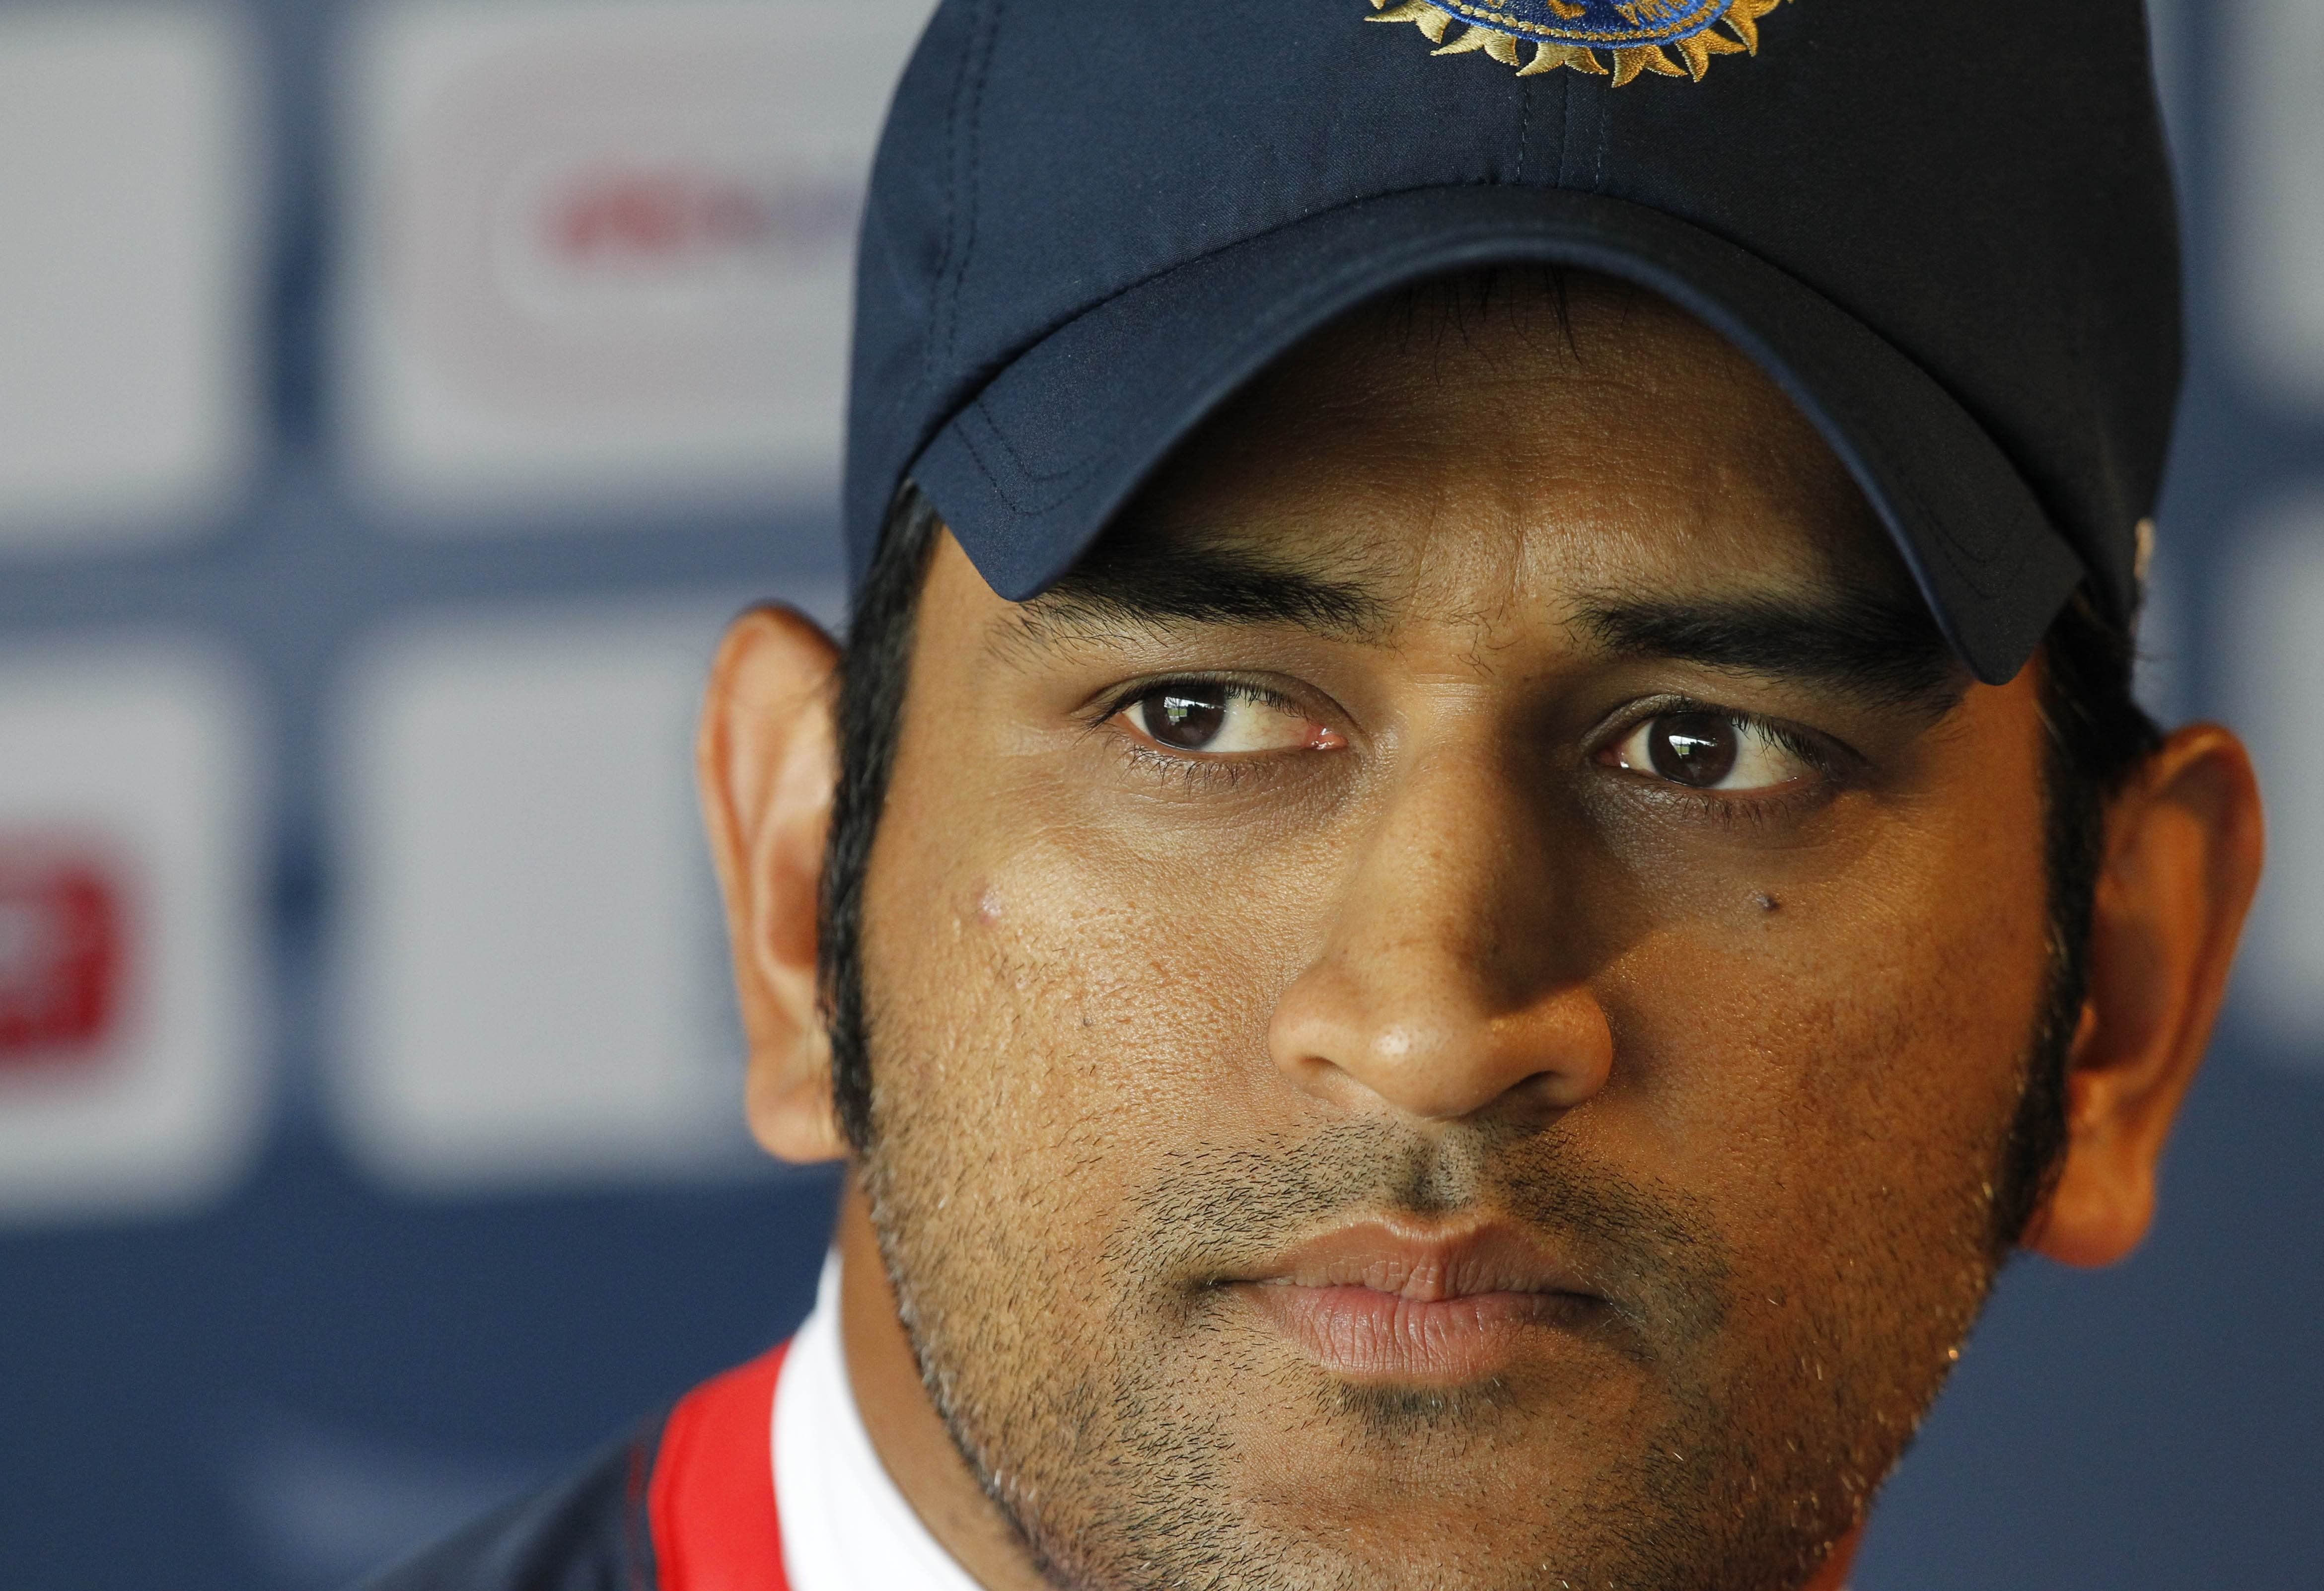 Ms dhoni net worth and earning with cars images a sports news - 13 He Is One Of The Highest Tax Payers In India He Paid An Amount Worth Rs 12 Crores In 2013